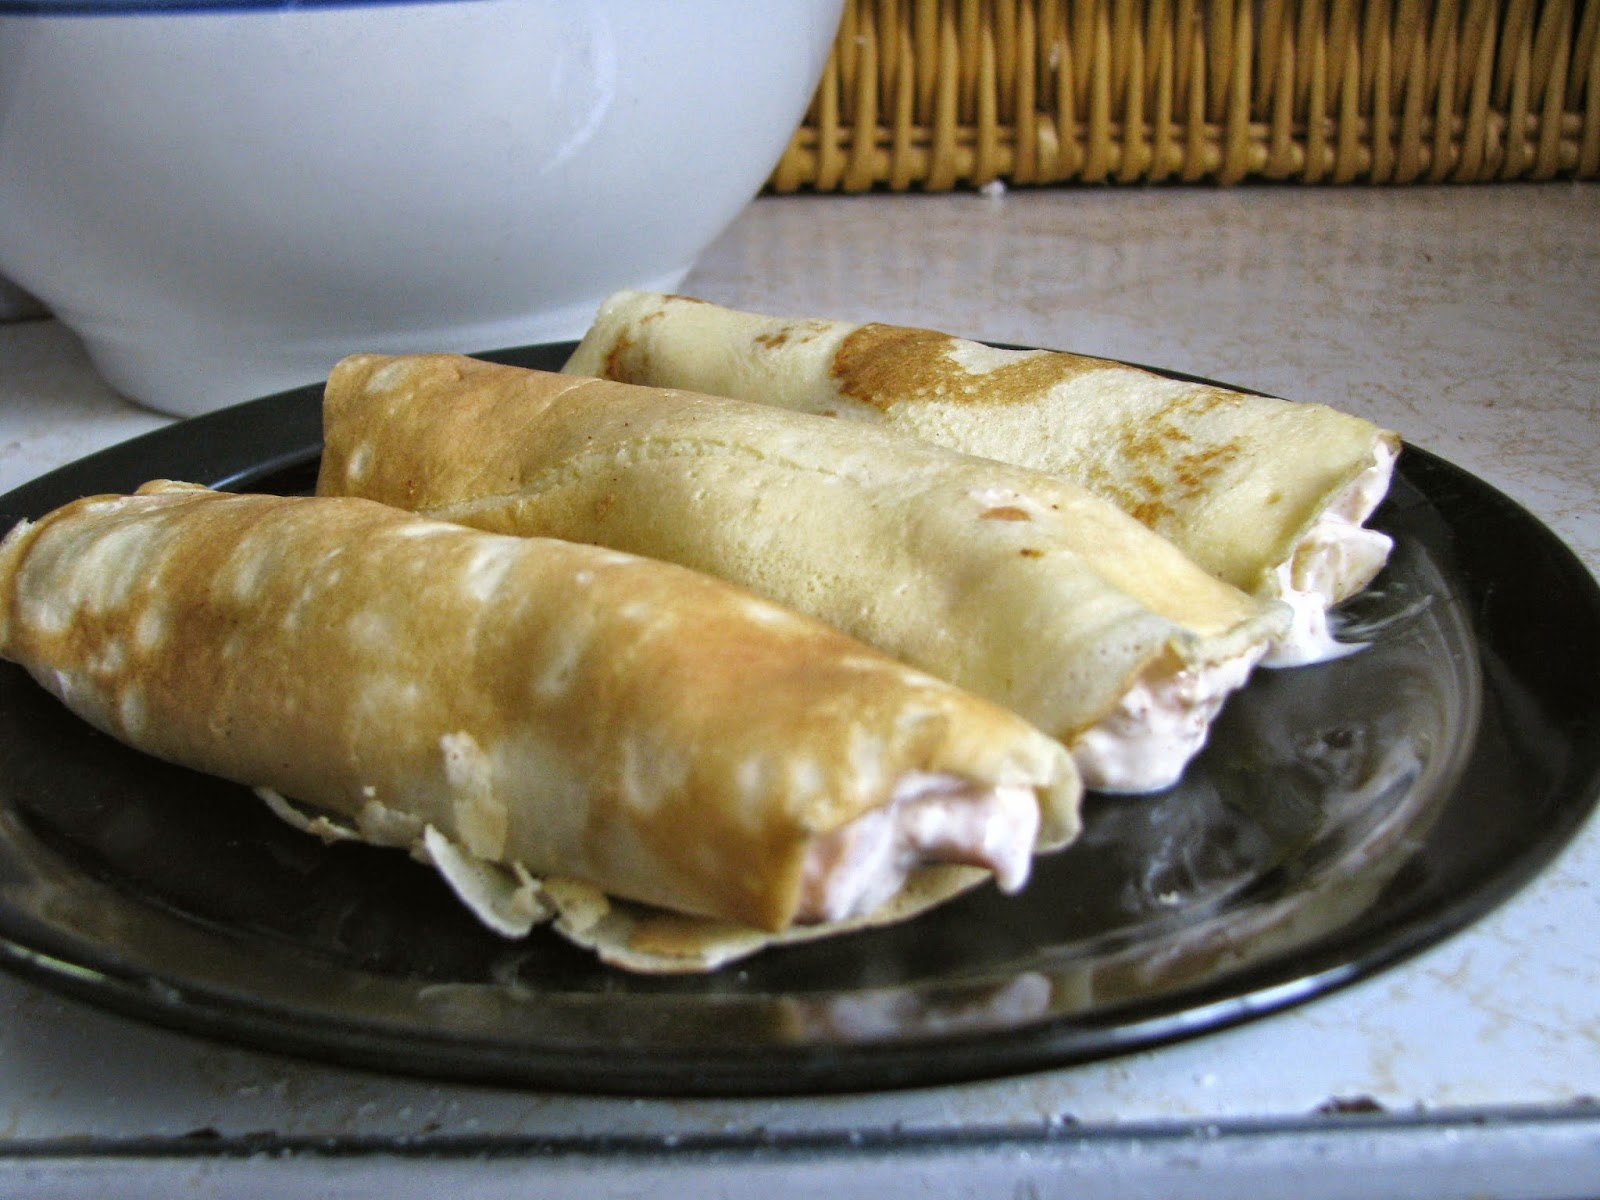 http://angelgirlpj.blogspot.com/2015/01/basic-crepe-recipe-fill-as-you-desire.html